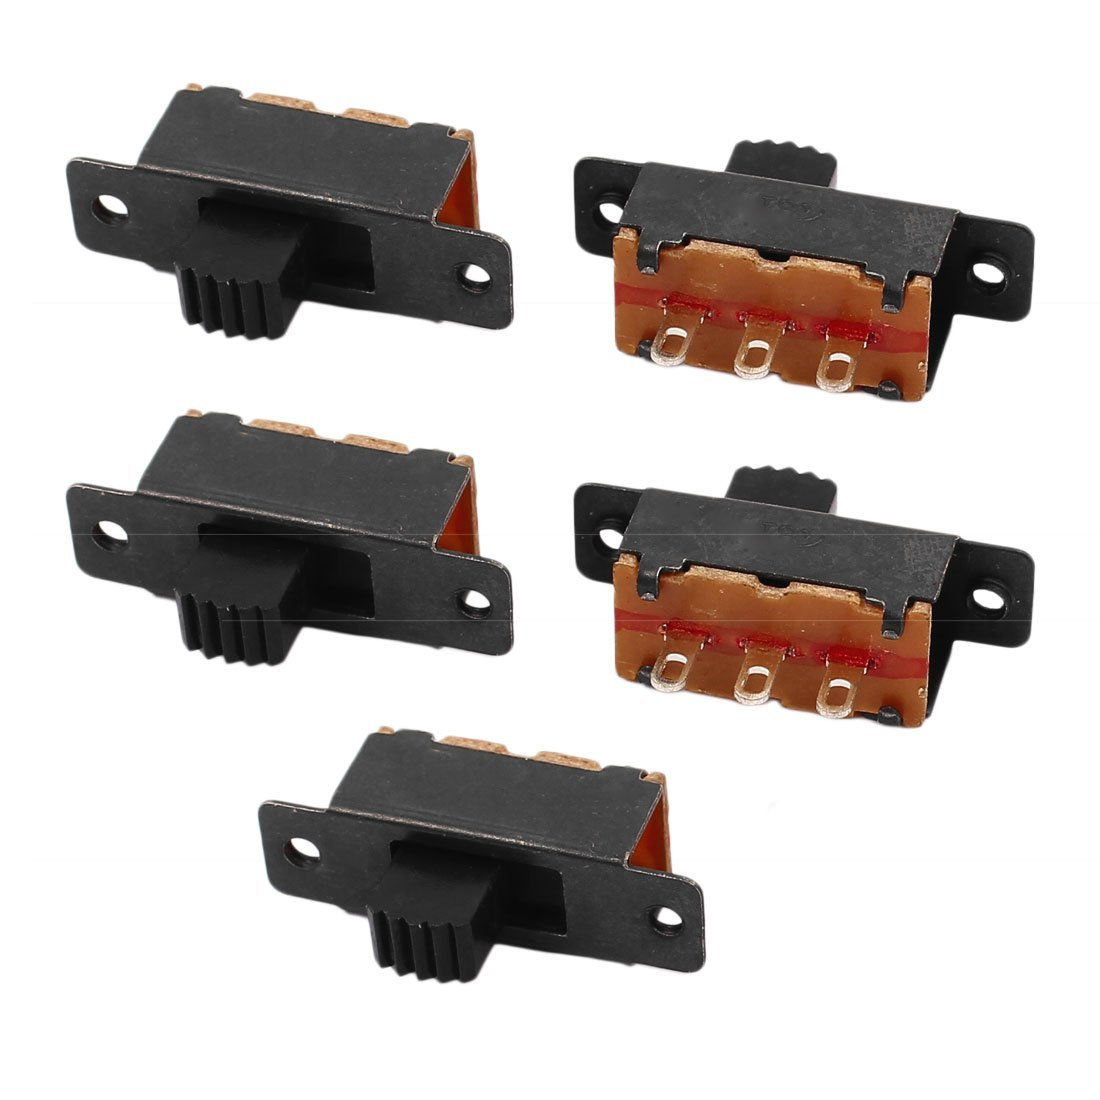 uxcell 5 Pcs 2 Position 3P SPDT Micro Miniature PCB Slide Switch Latching Toggle Switch